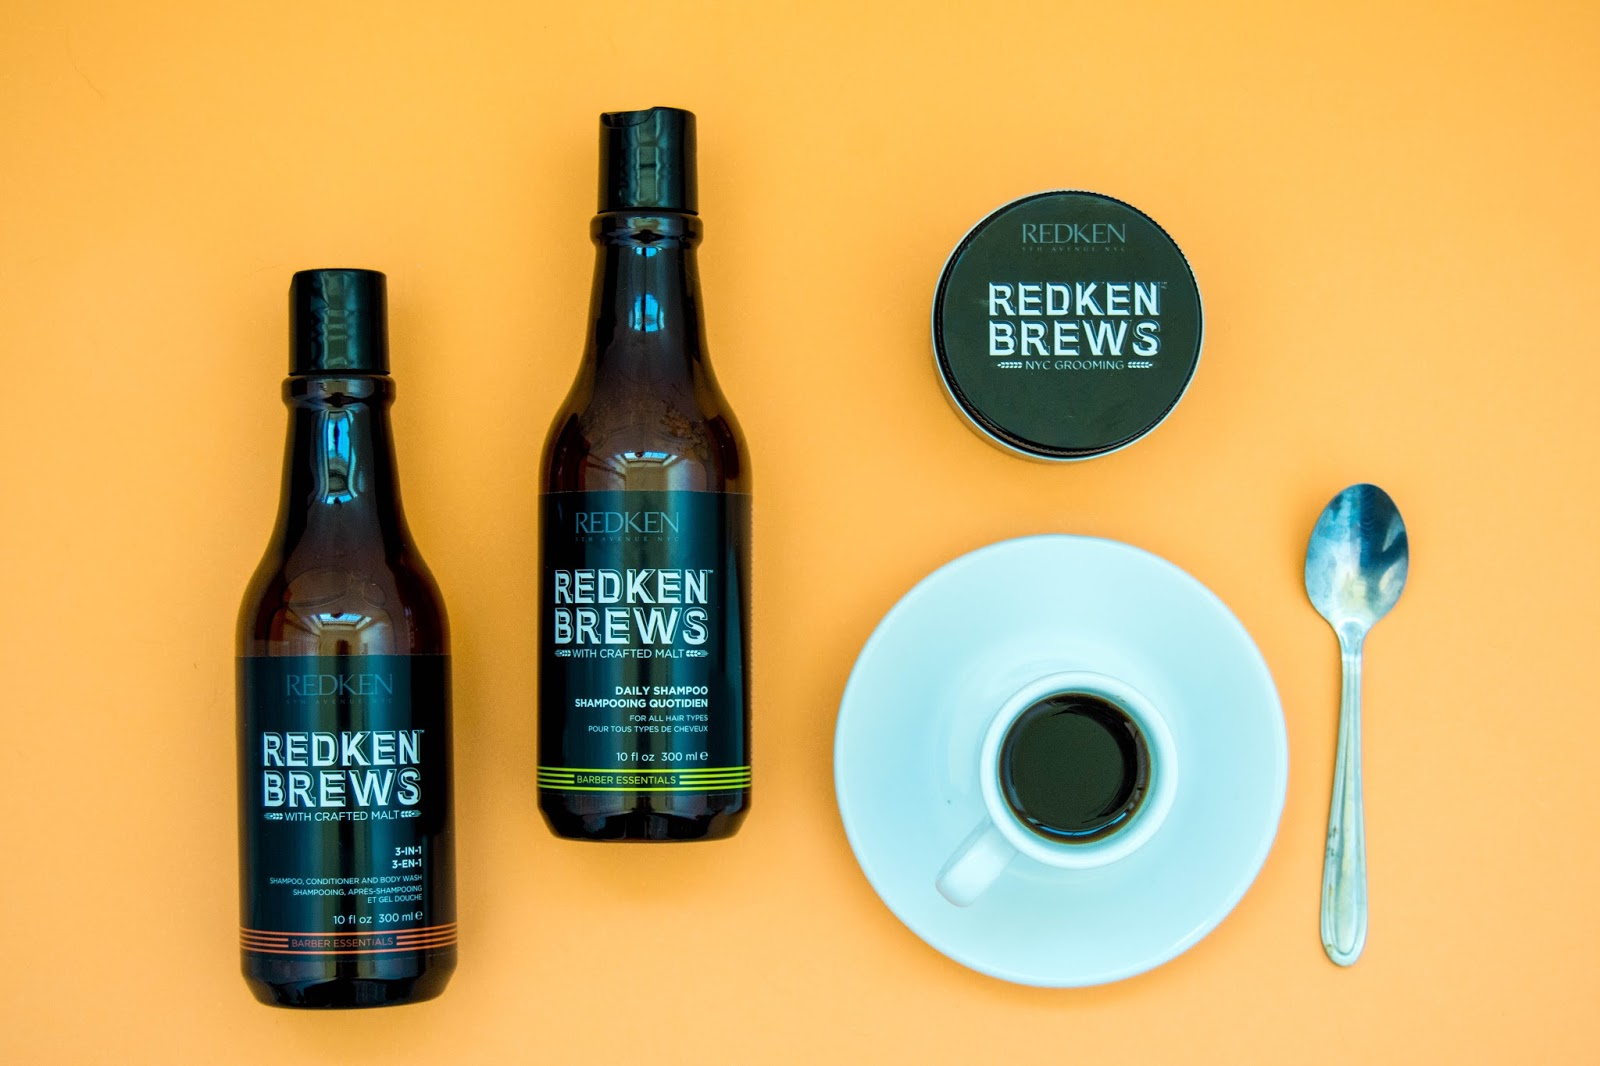 redken brews loja do shampoo